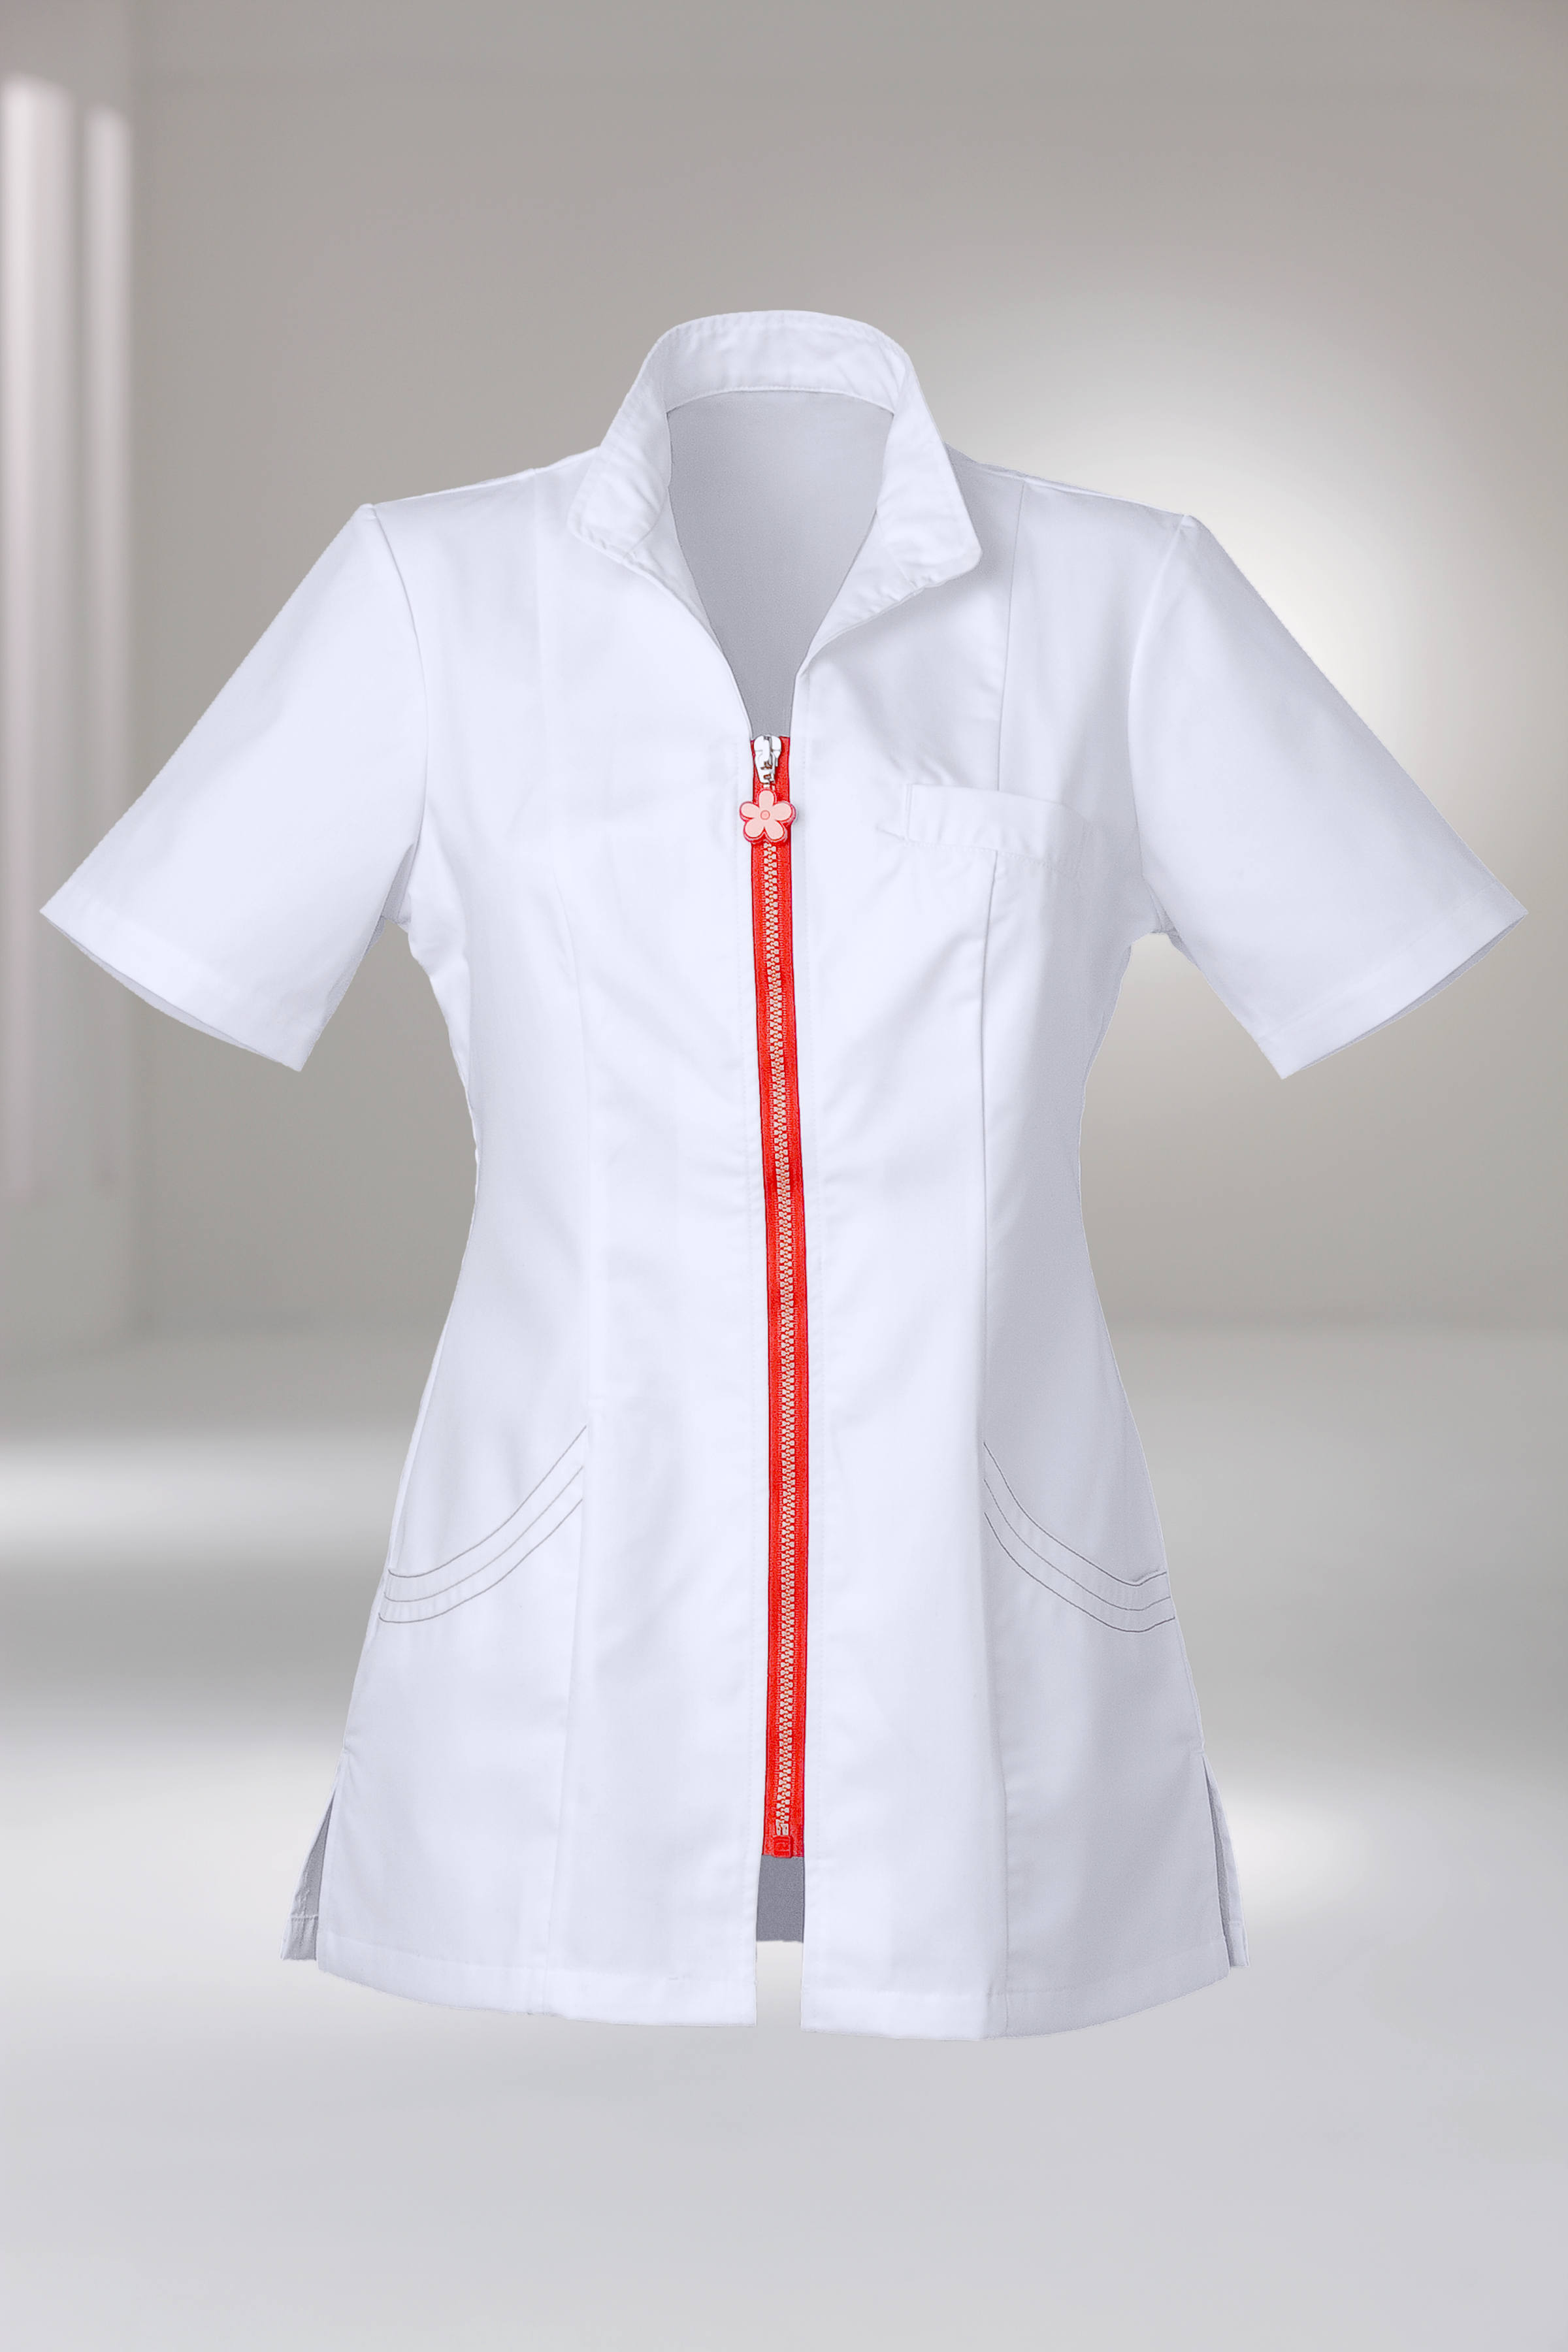 Blouse Medicale Femme Chrystel Clinic Dress